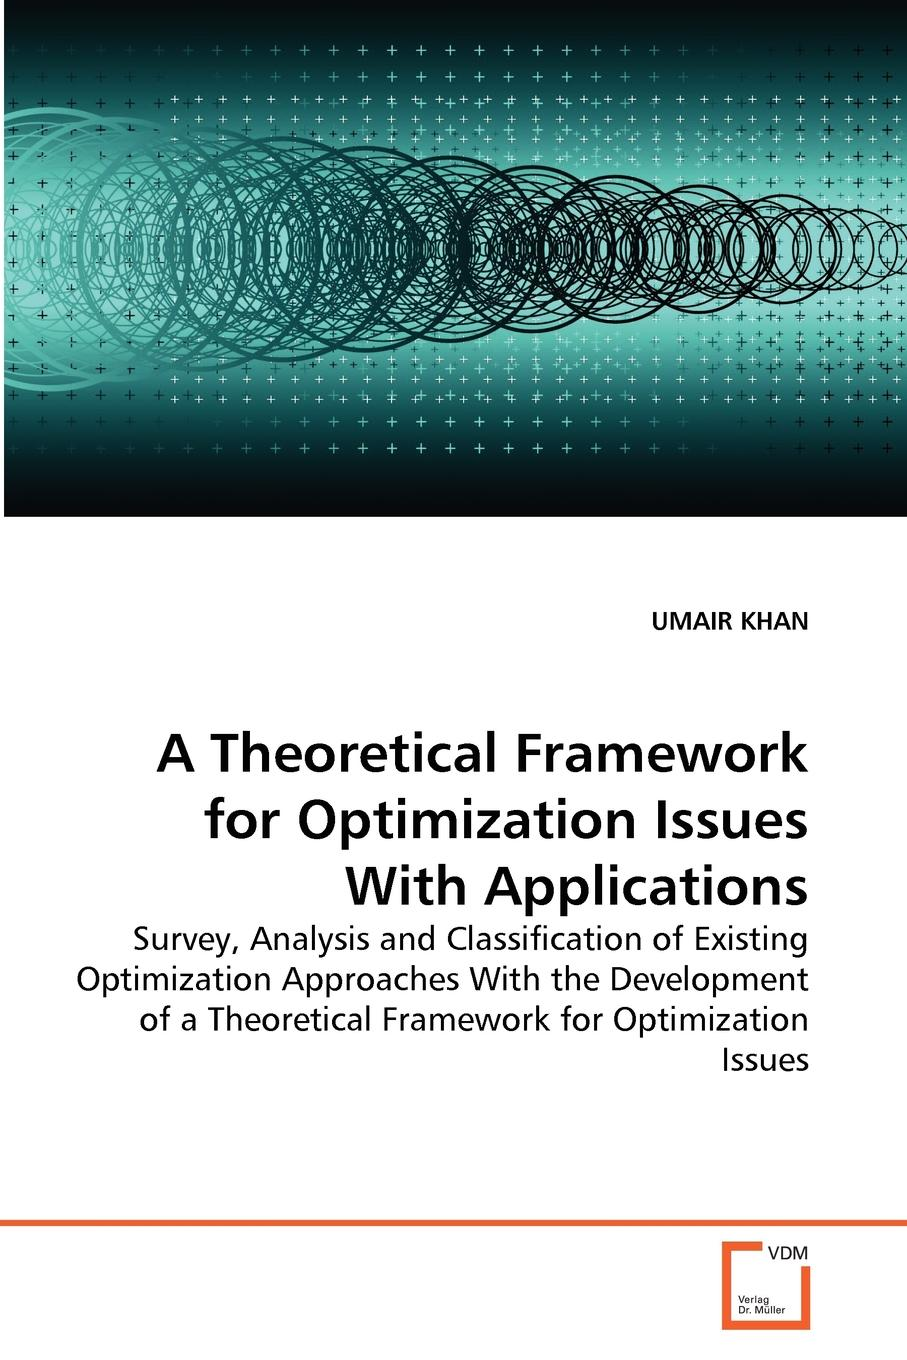 UMAIR KHAN A Theoretical Framework for Optimization Issues With Applications stanislaw h zak an introduction to optimization